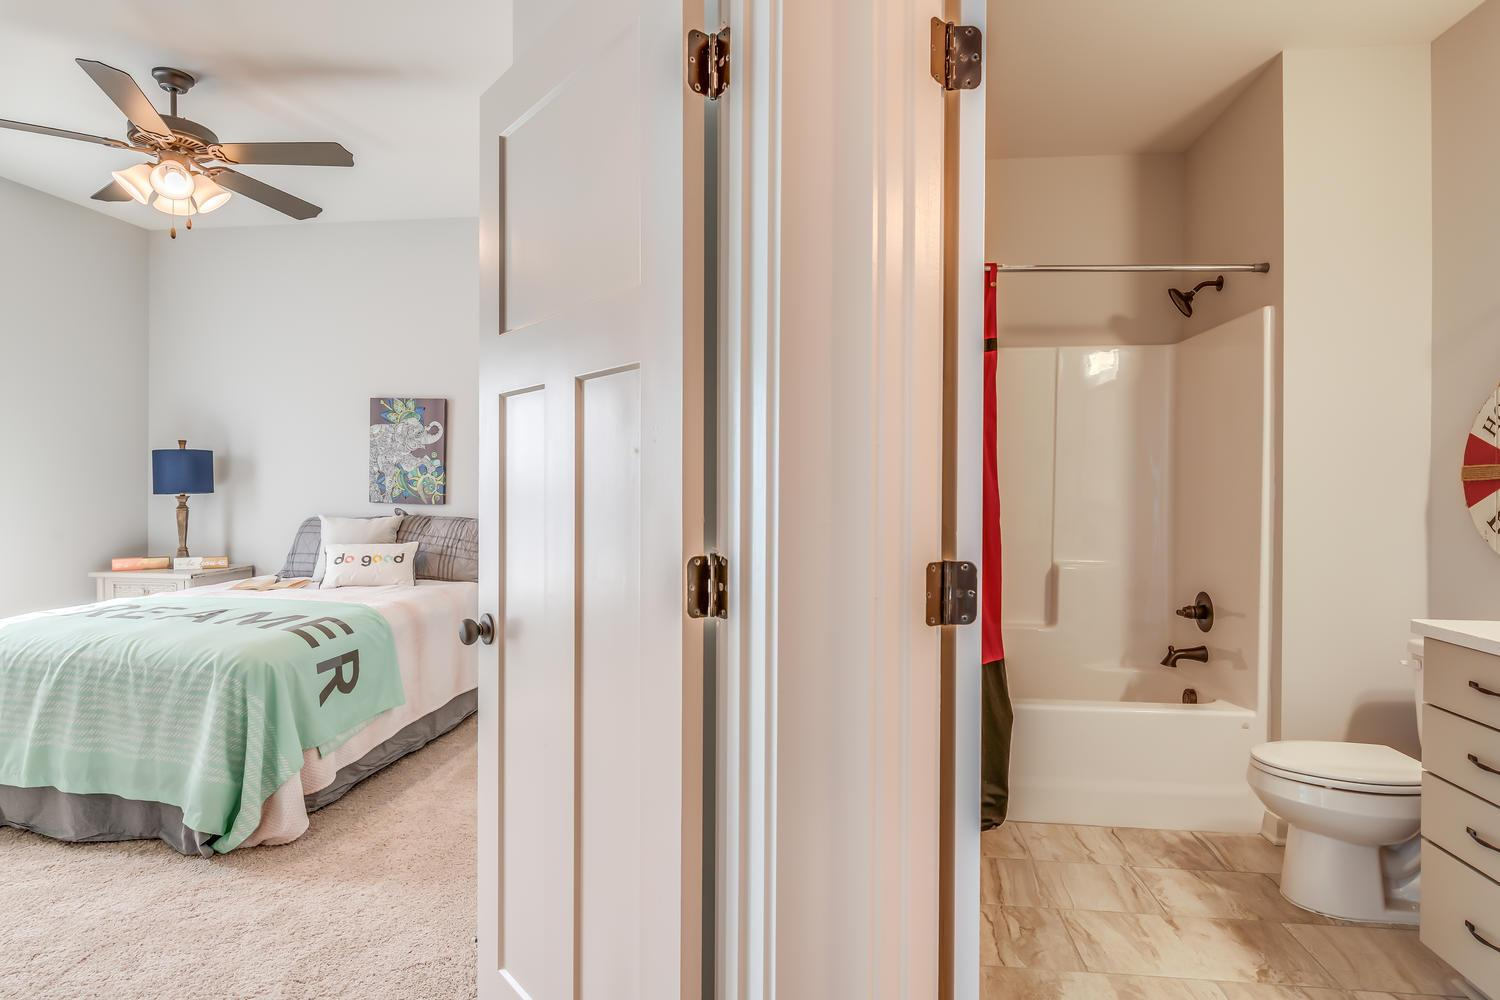 Bedroom featured in the Trenton New Park By Lowder New Homes in Montgomery, AL